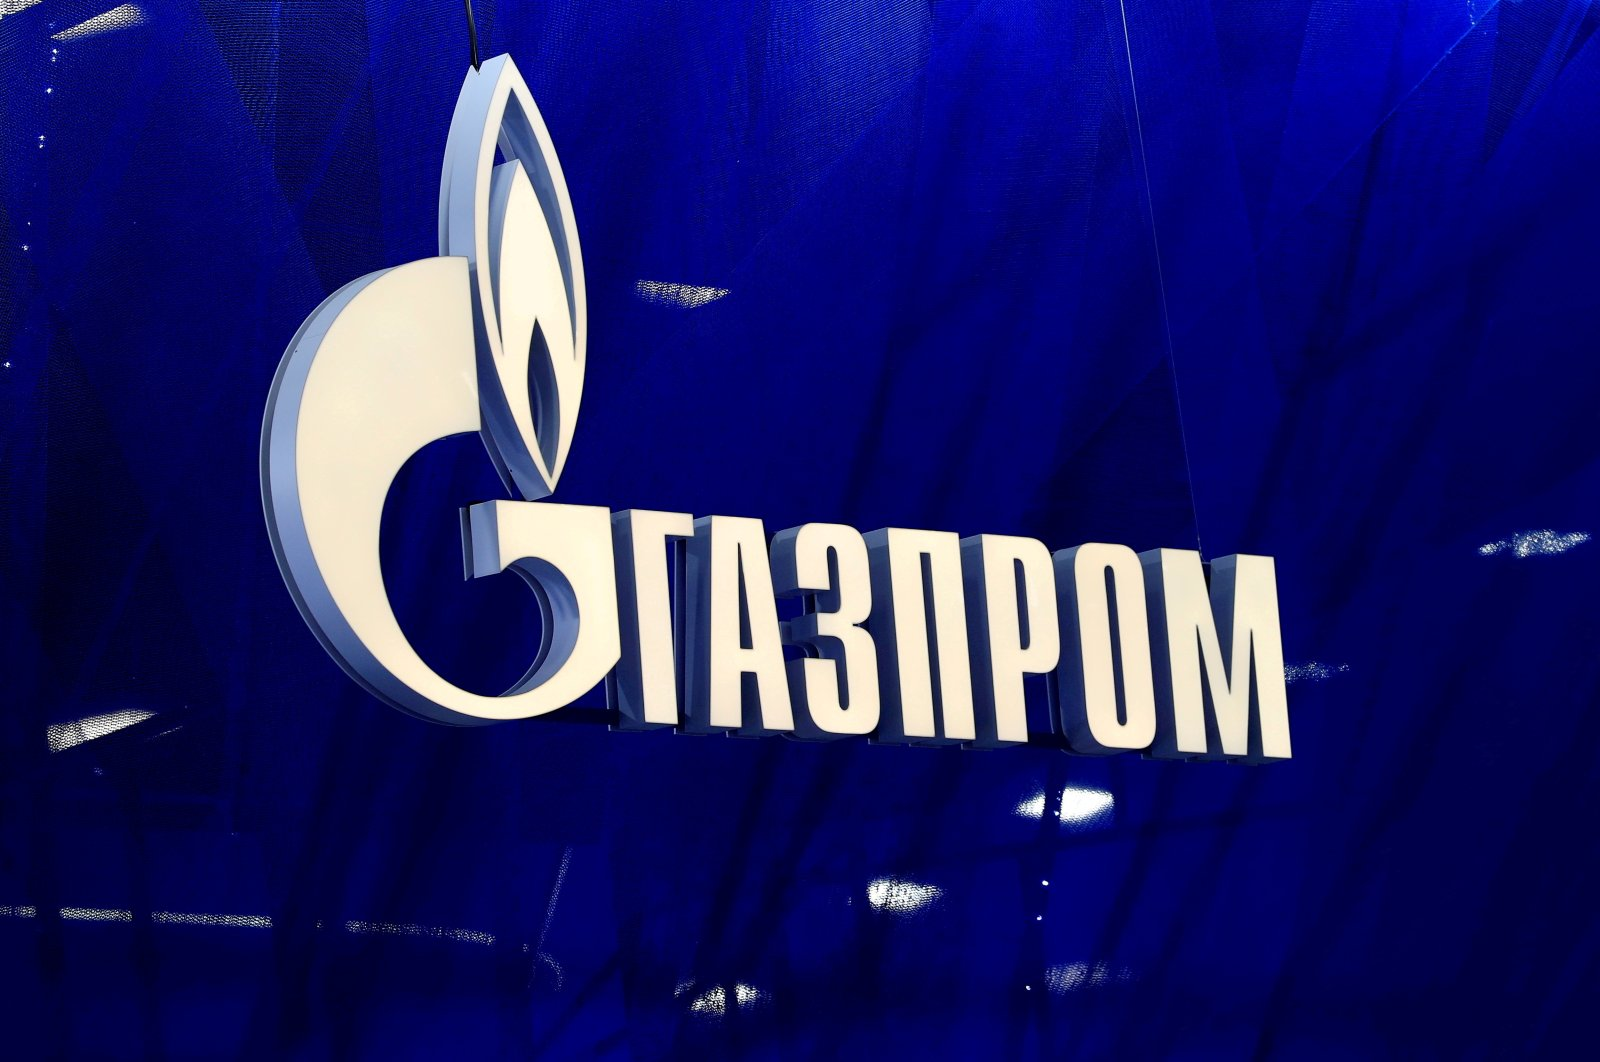 The logo of Gazprom company is seen at the St. Petersburg International Economic Forum (SPIEF) in Saint Petersburg, Russia, June 2, 2021. (Reuters Photo)